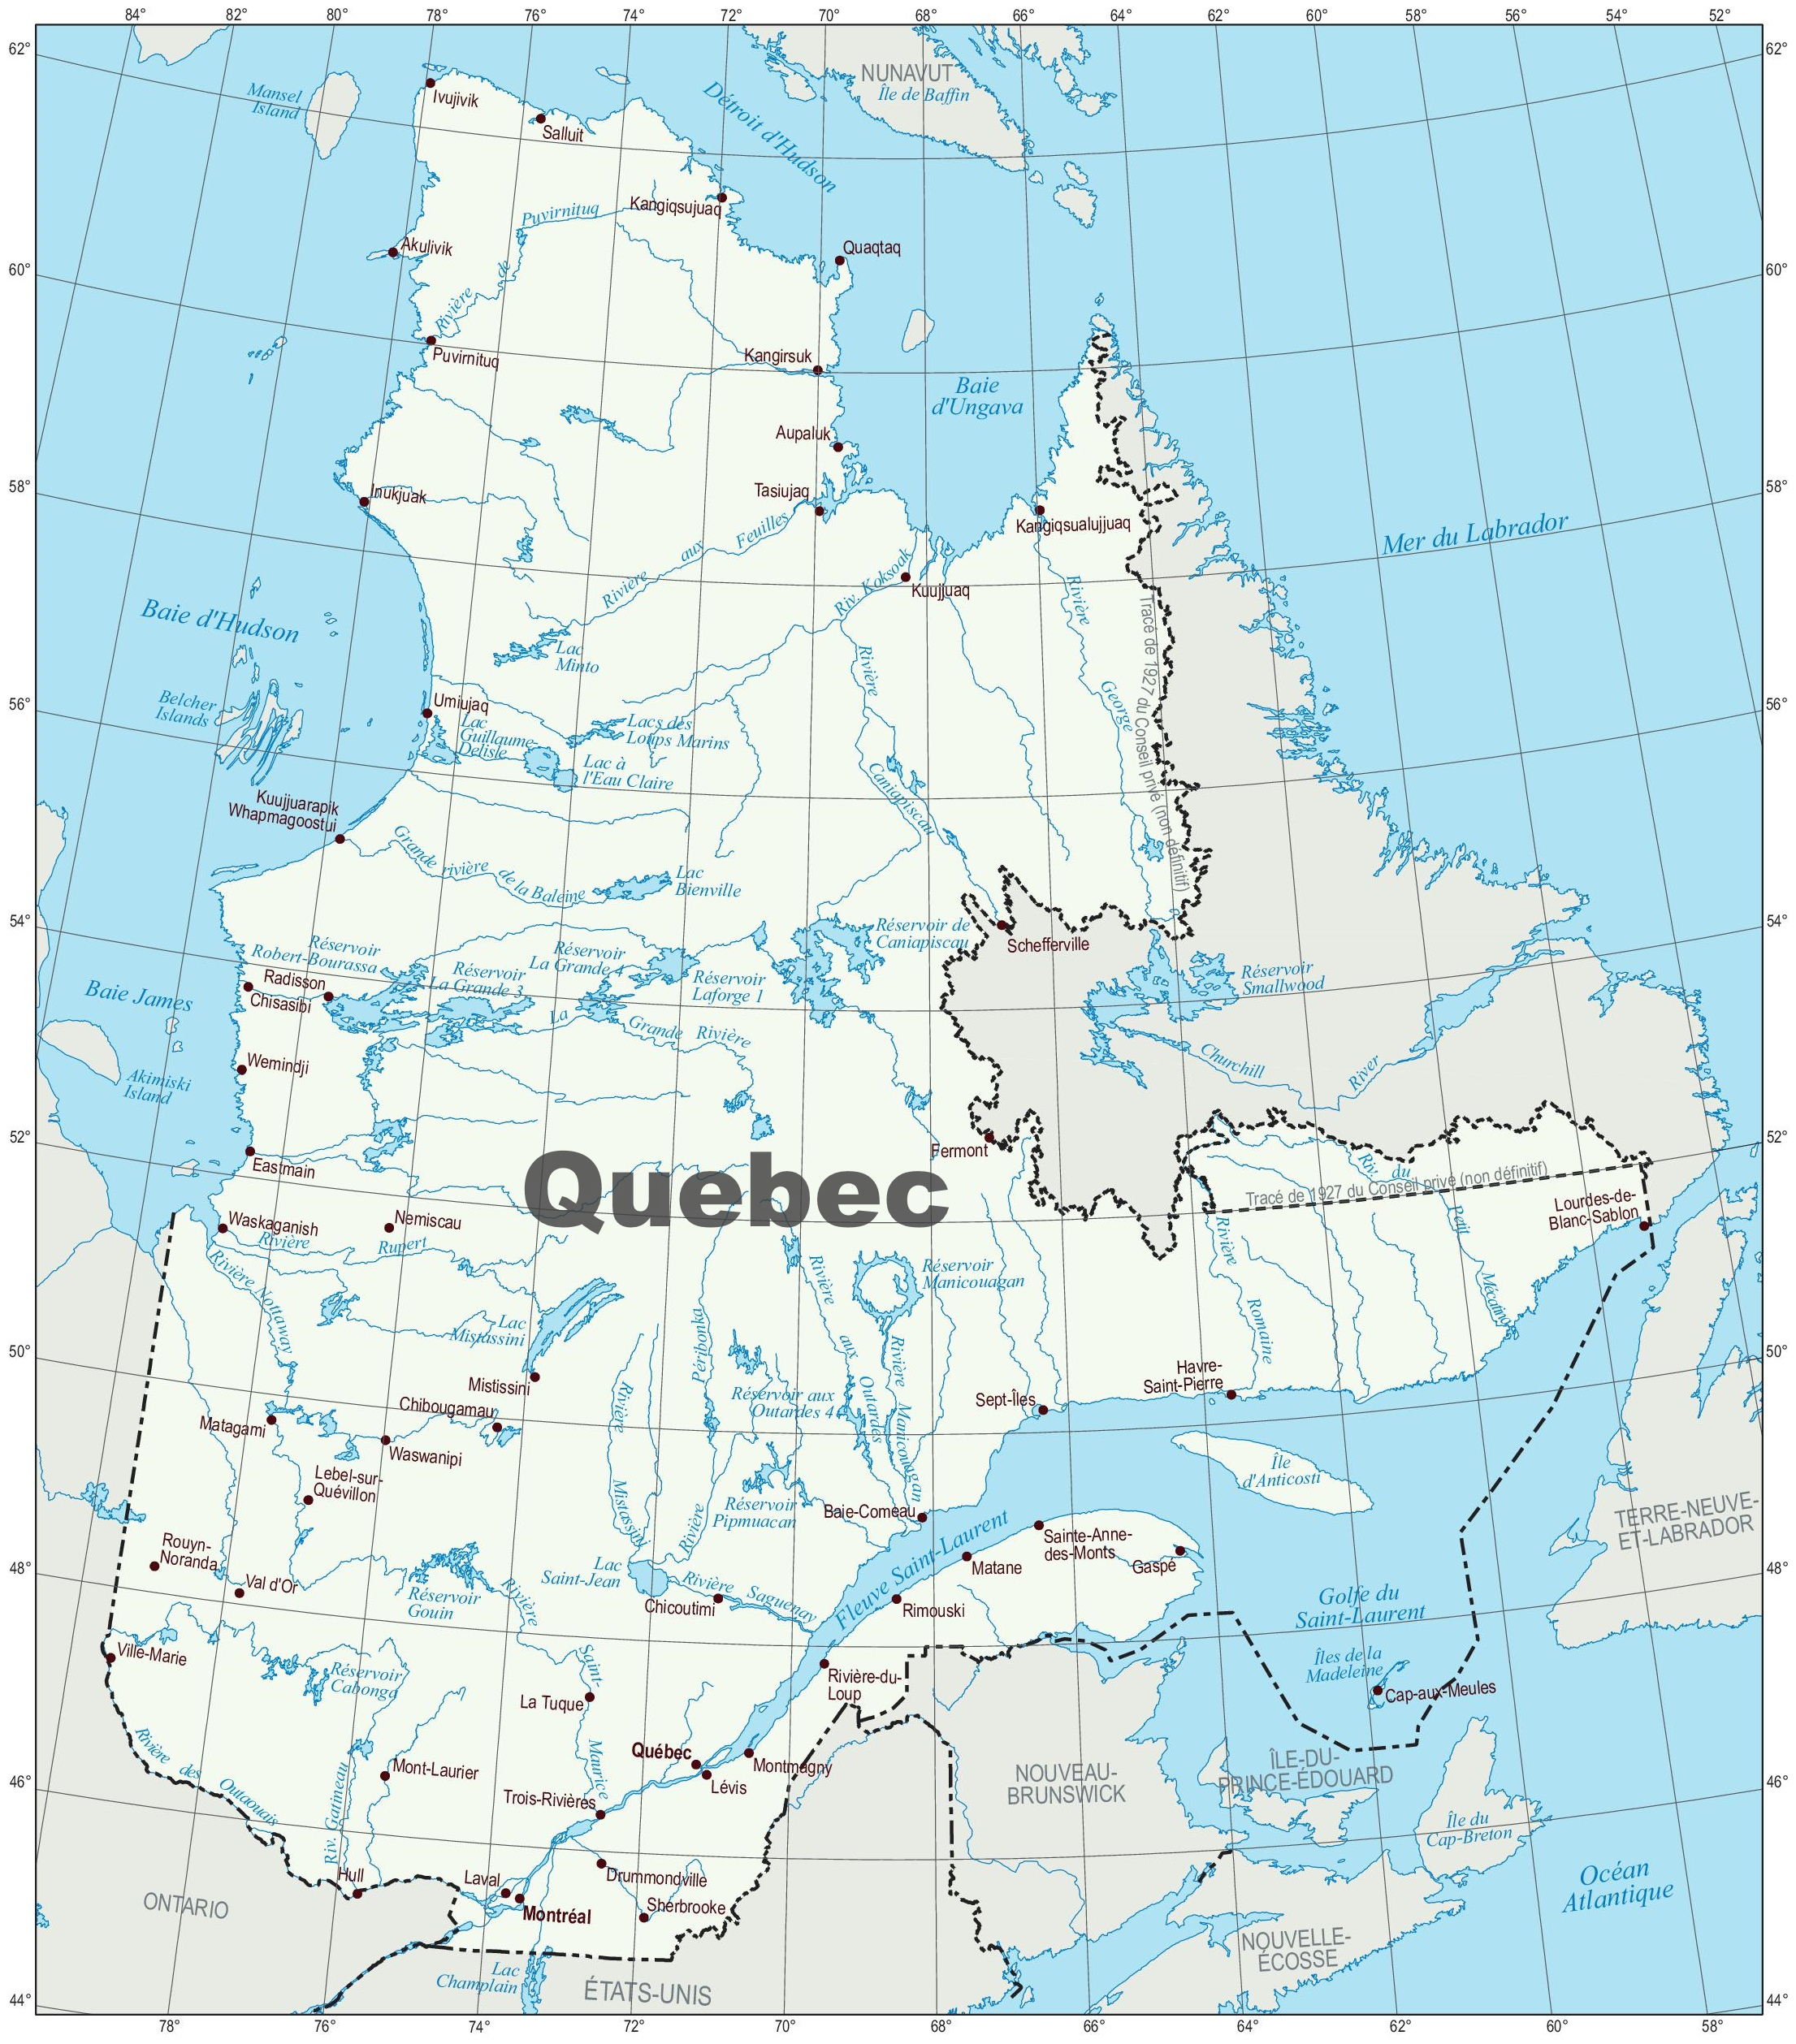 Quebec On Map Of Canada.Map Of Quebec With Cities And Towns